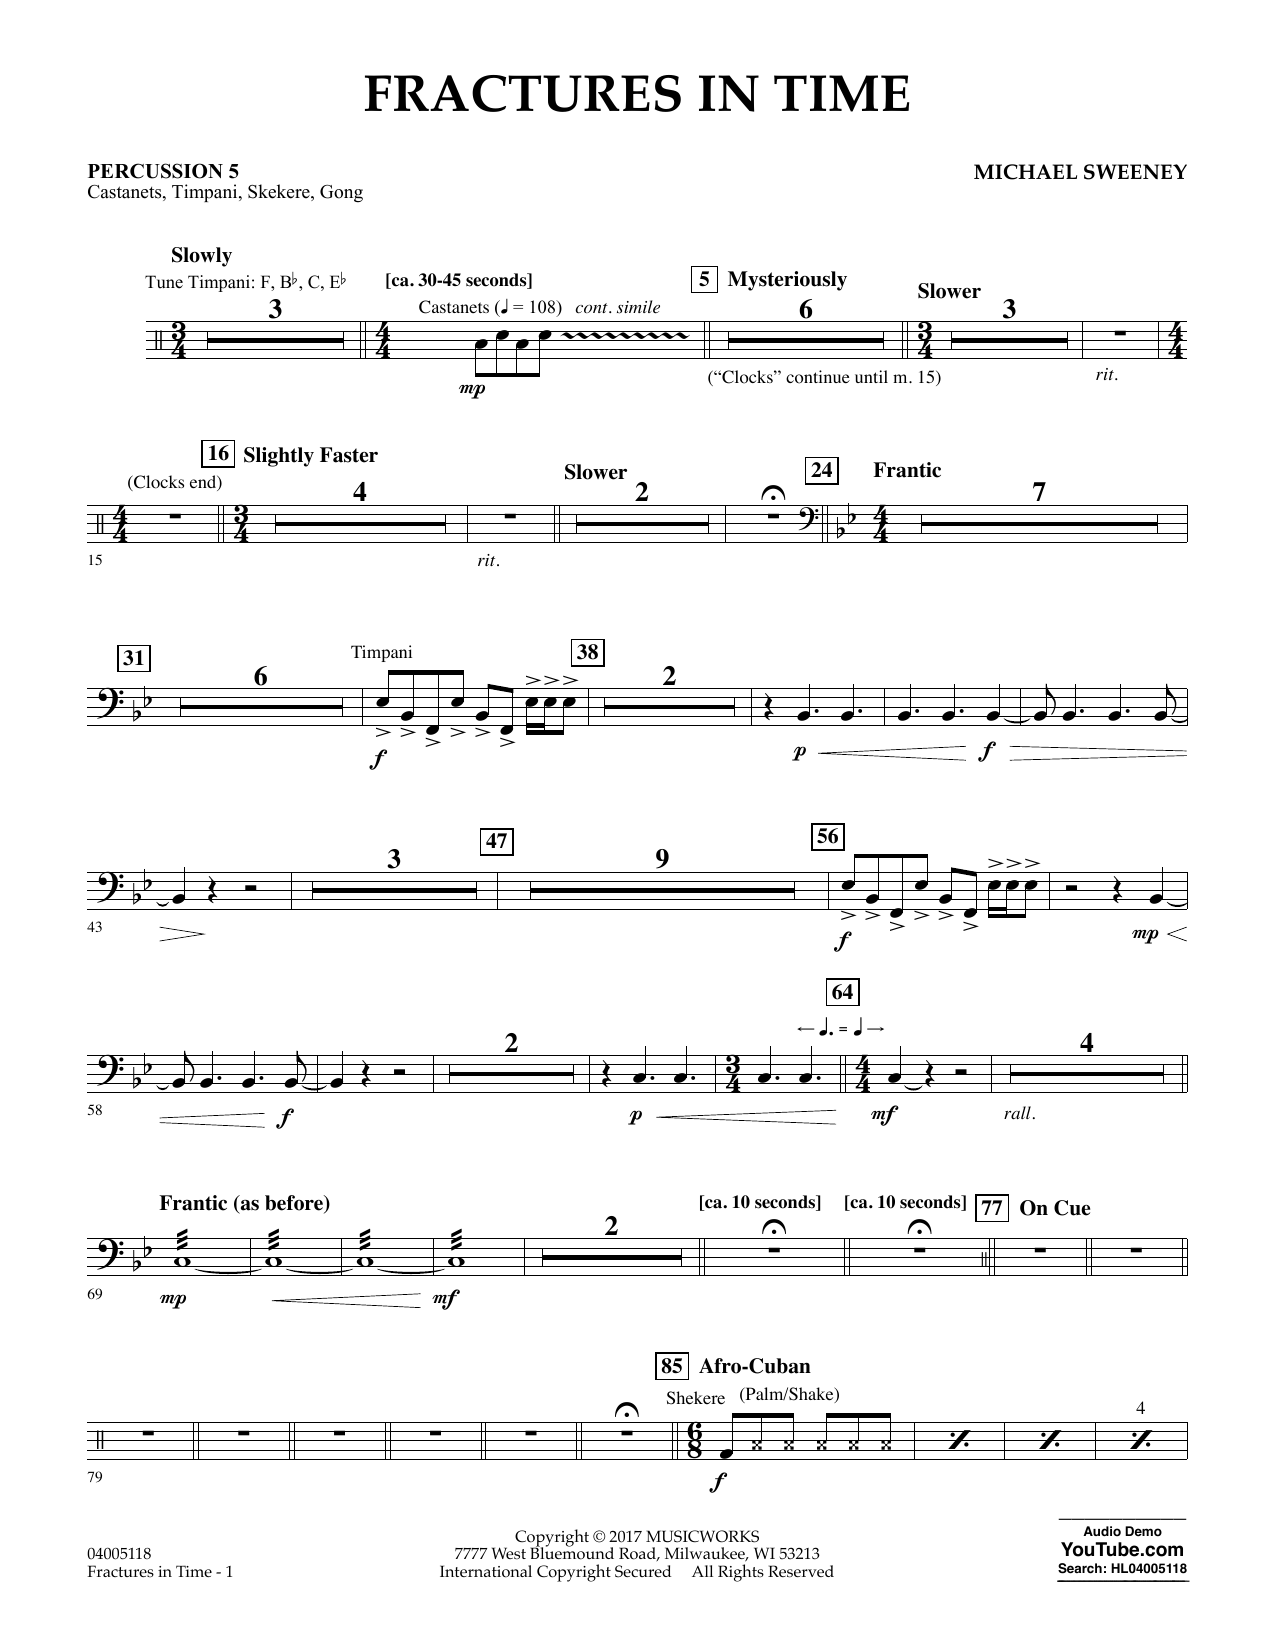 Fractures in Time - Percussion 5 Sheet Music